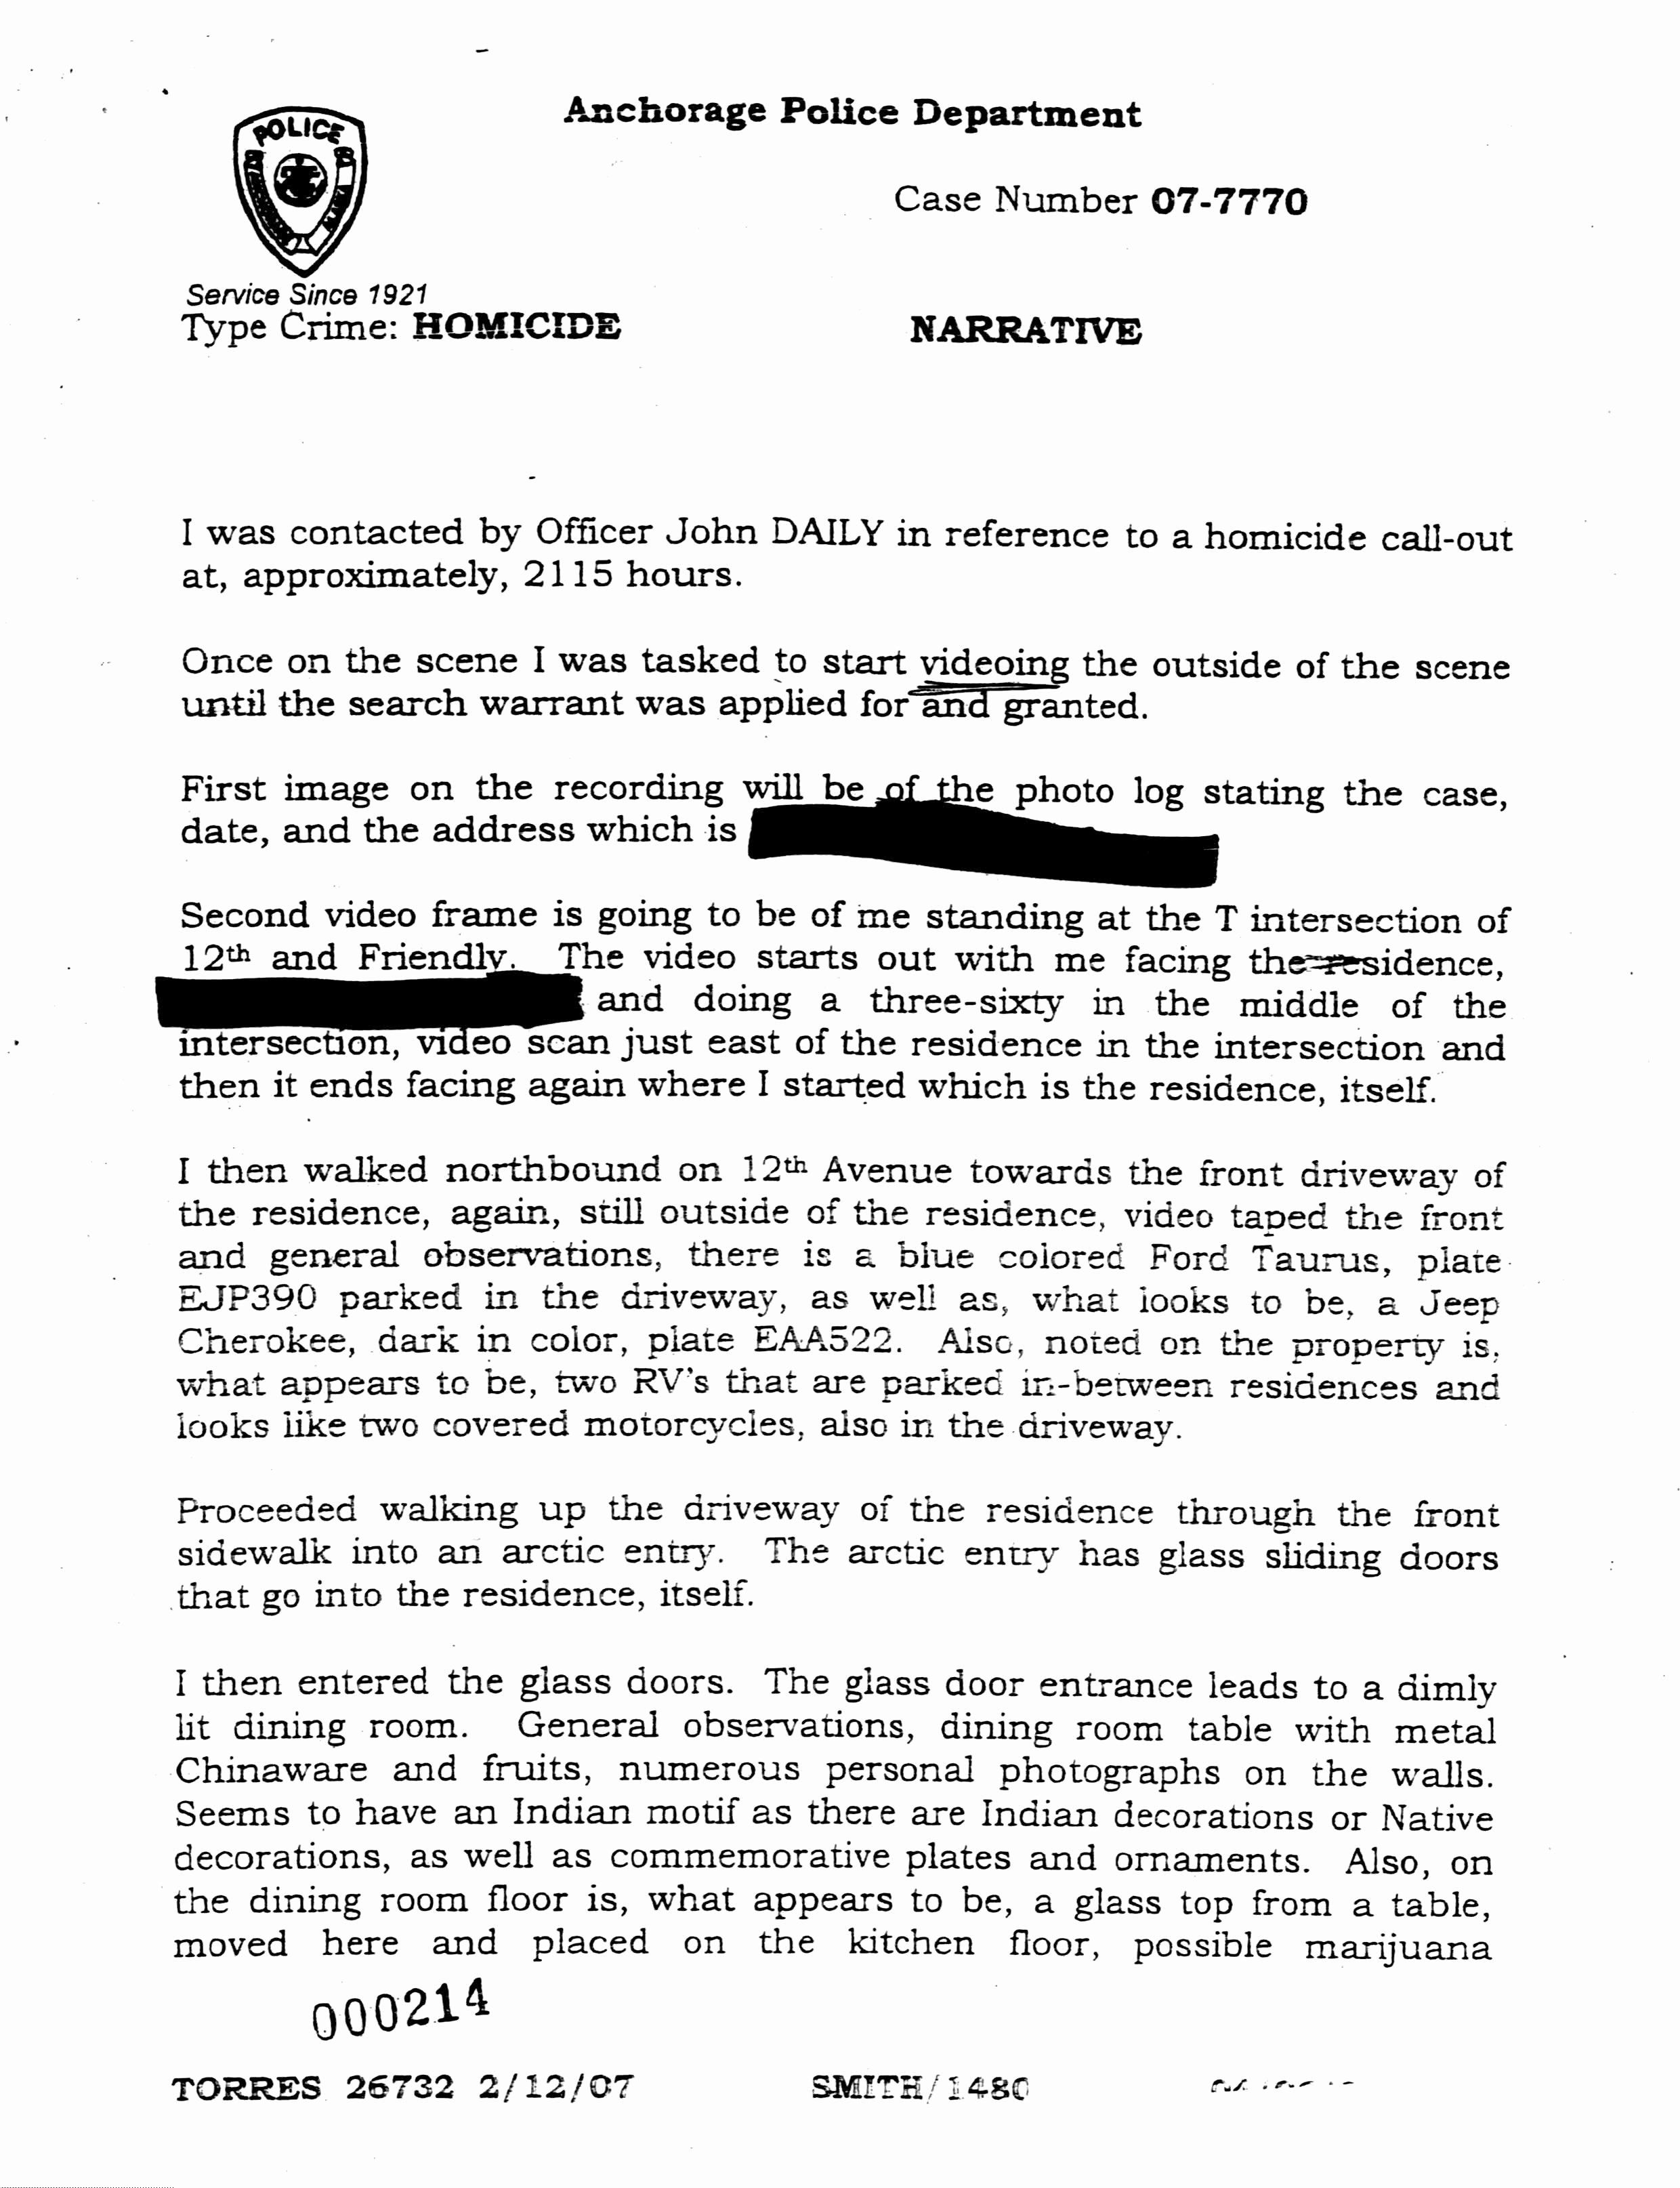 Sample Police Report Writing In 2020 Report Writing Writing A